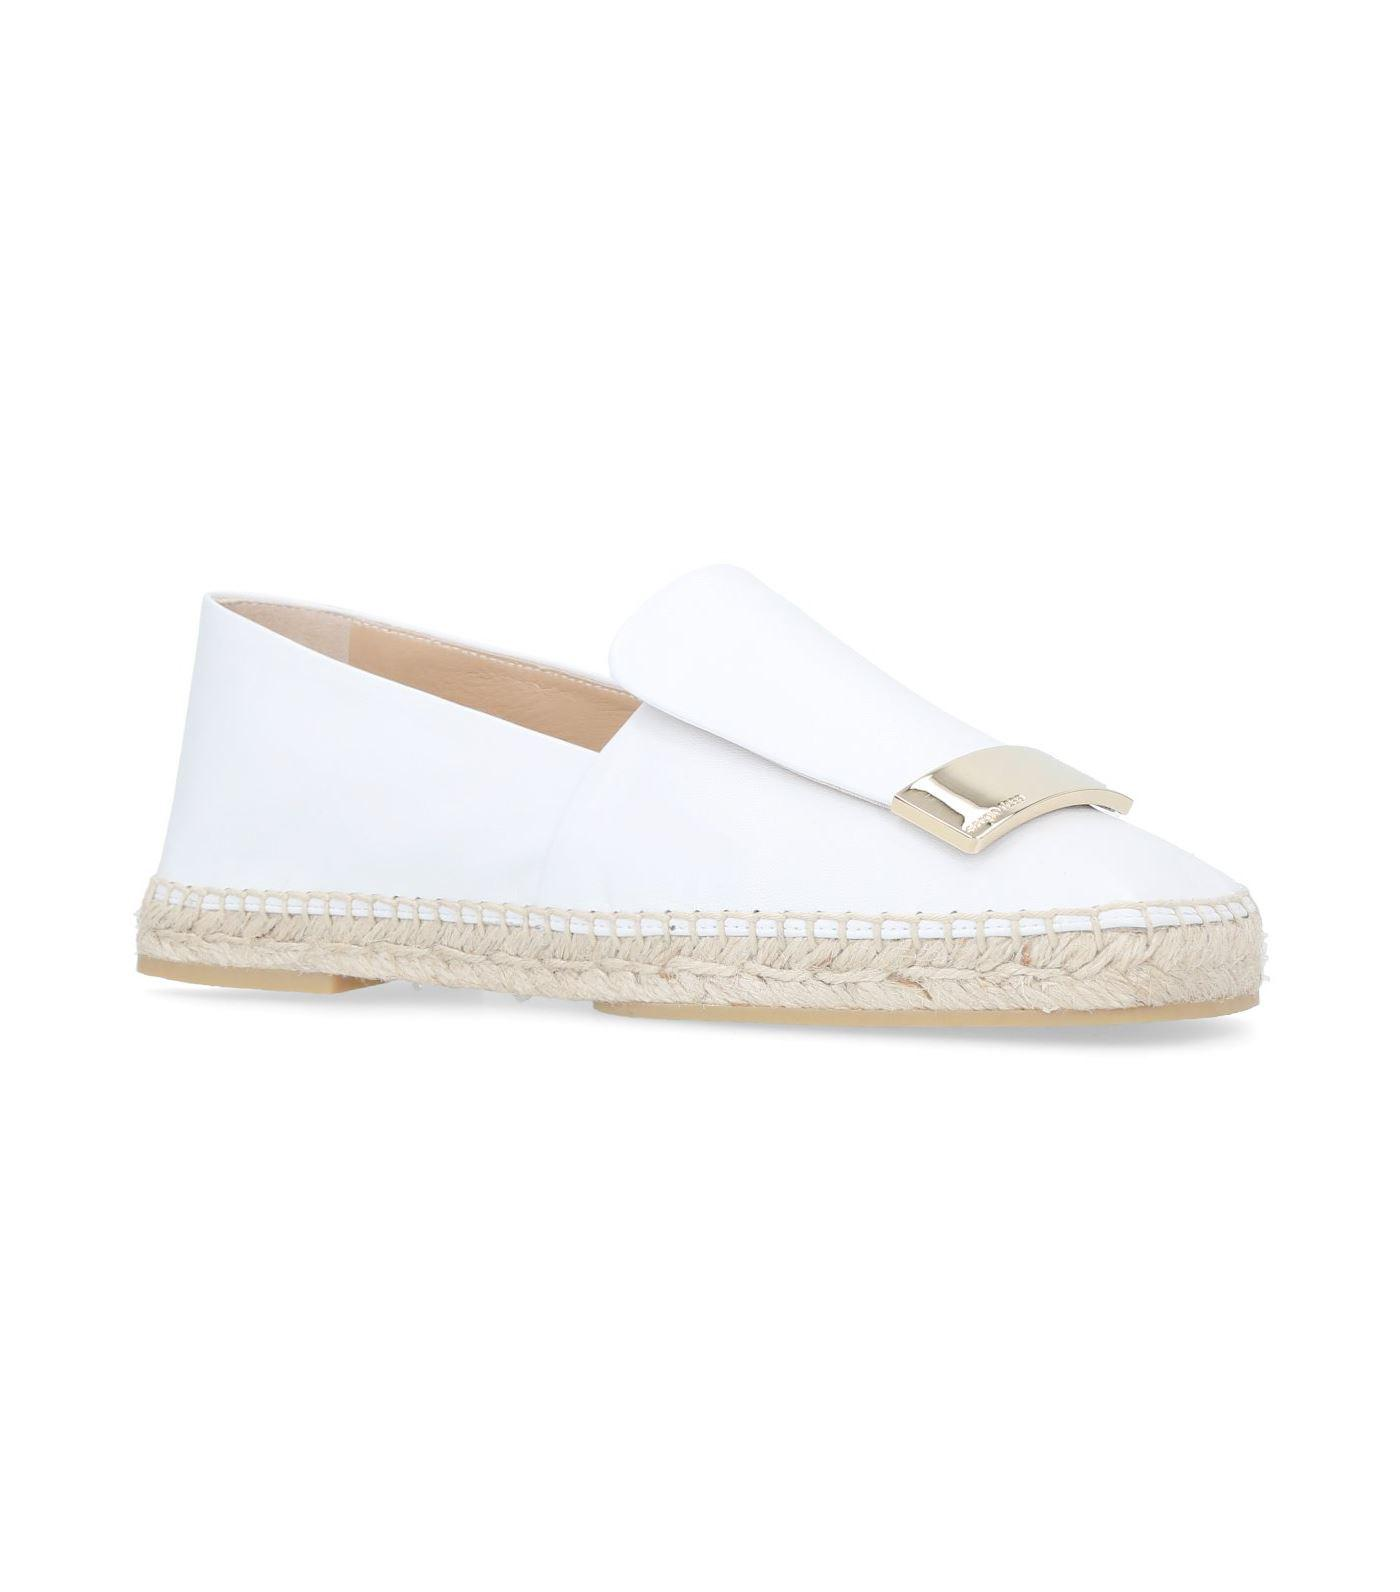 Flat Moccasin Espadrilles in Black Royal Leather Sergio Rossi Clearance Shop Discount Real Discount With Mastercard Cheap Sale How Much dKigc1OL